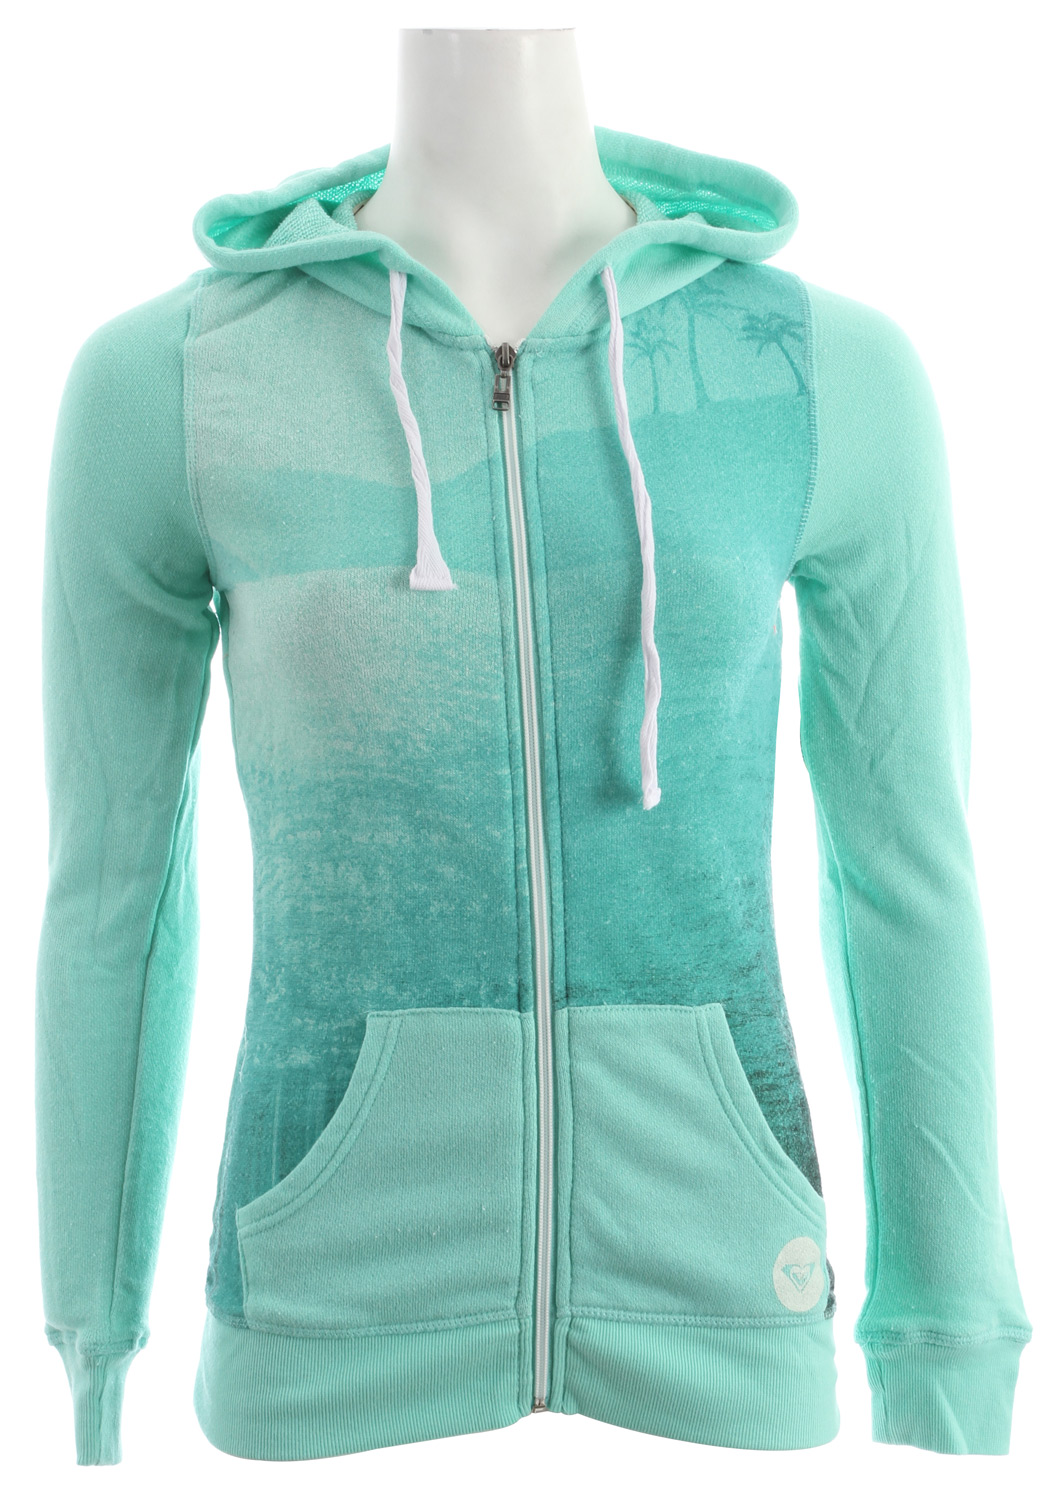 Surf Roxy In Stitches Hoodie - $28.95